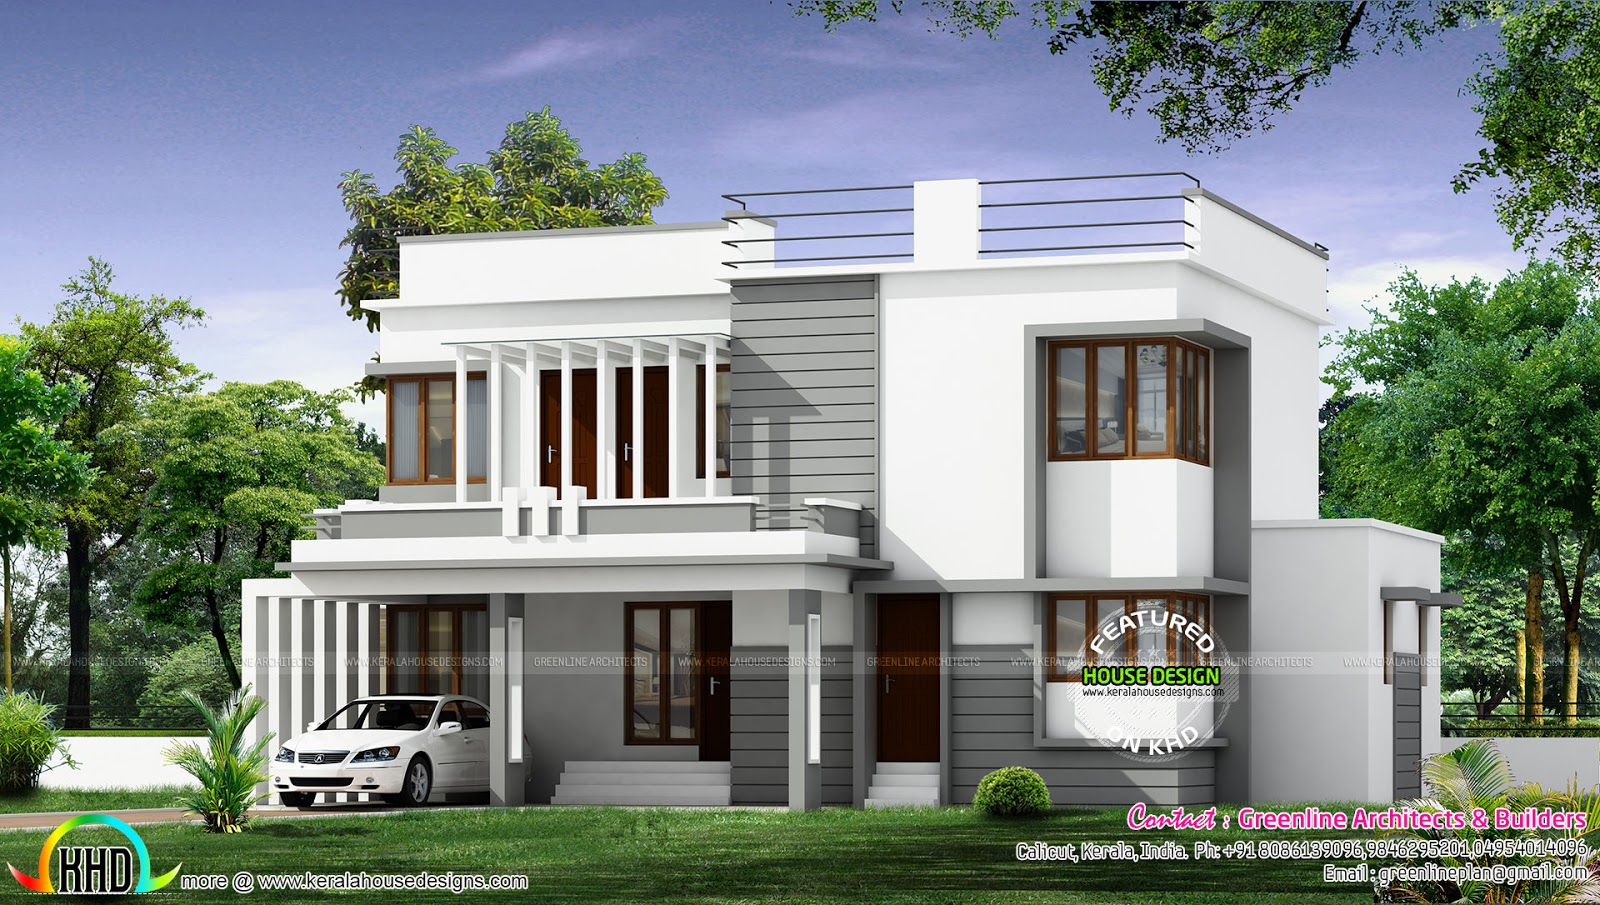 New modern house architecture kerala home design and for New latest house design